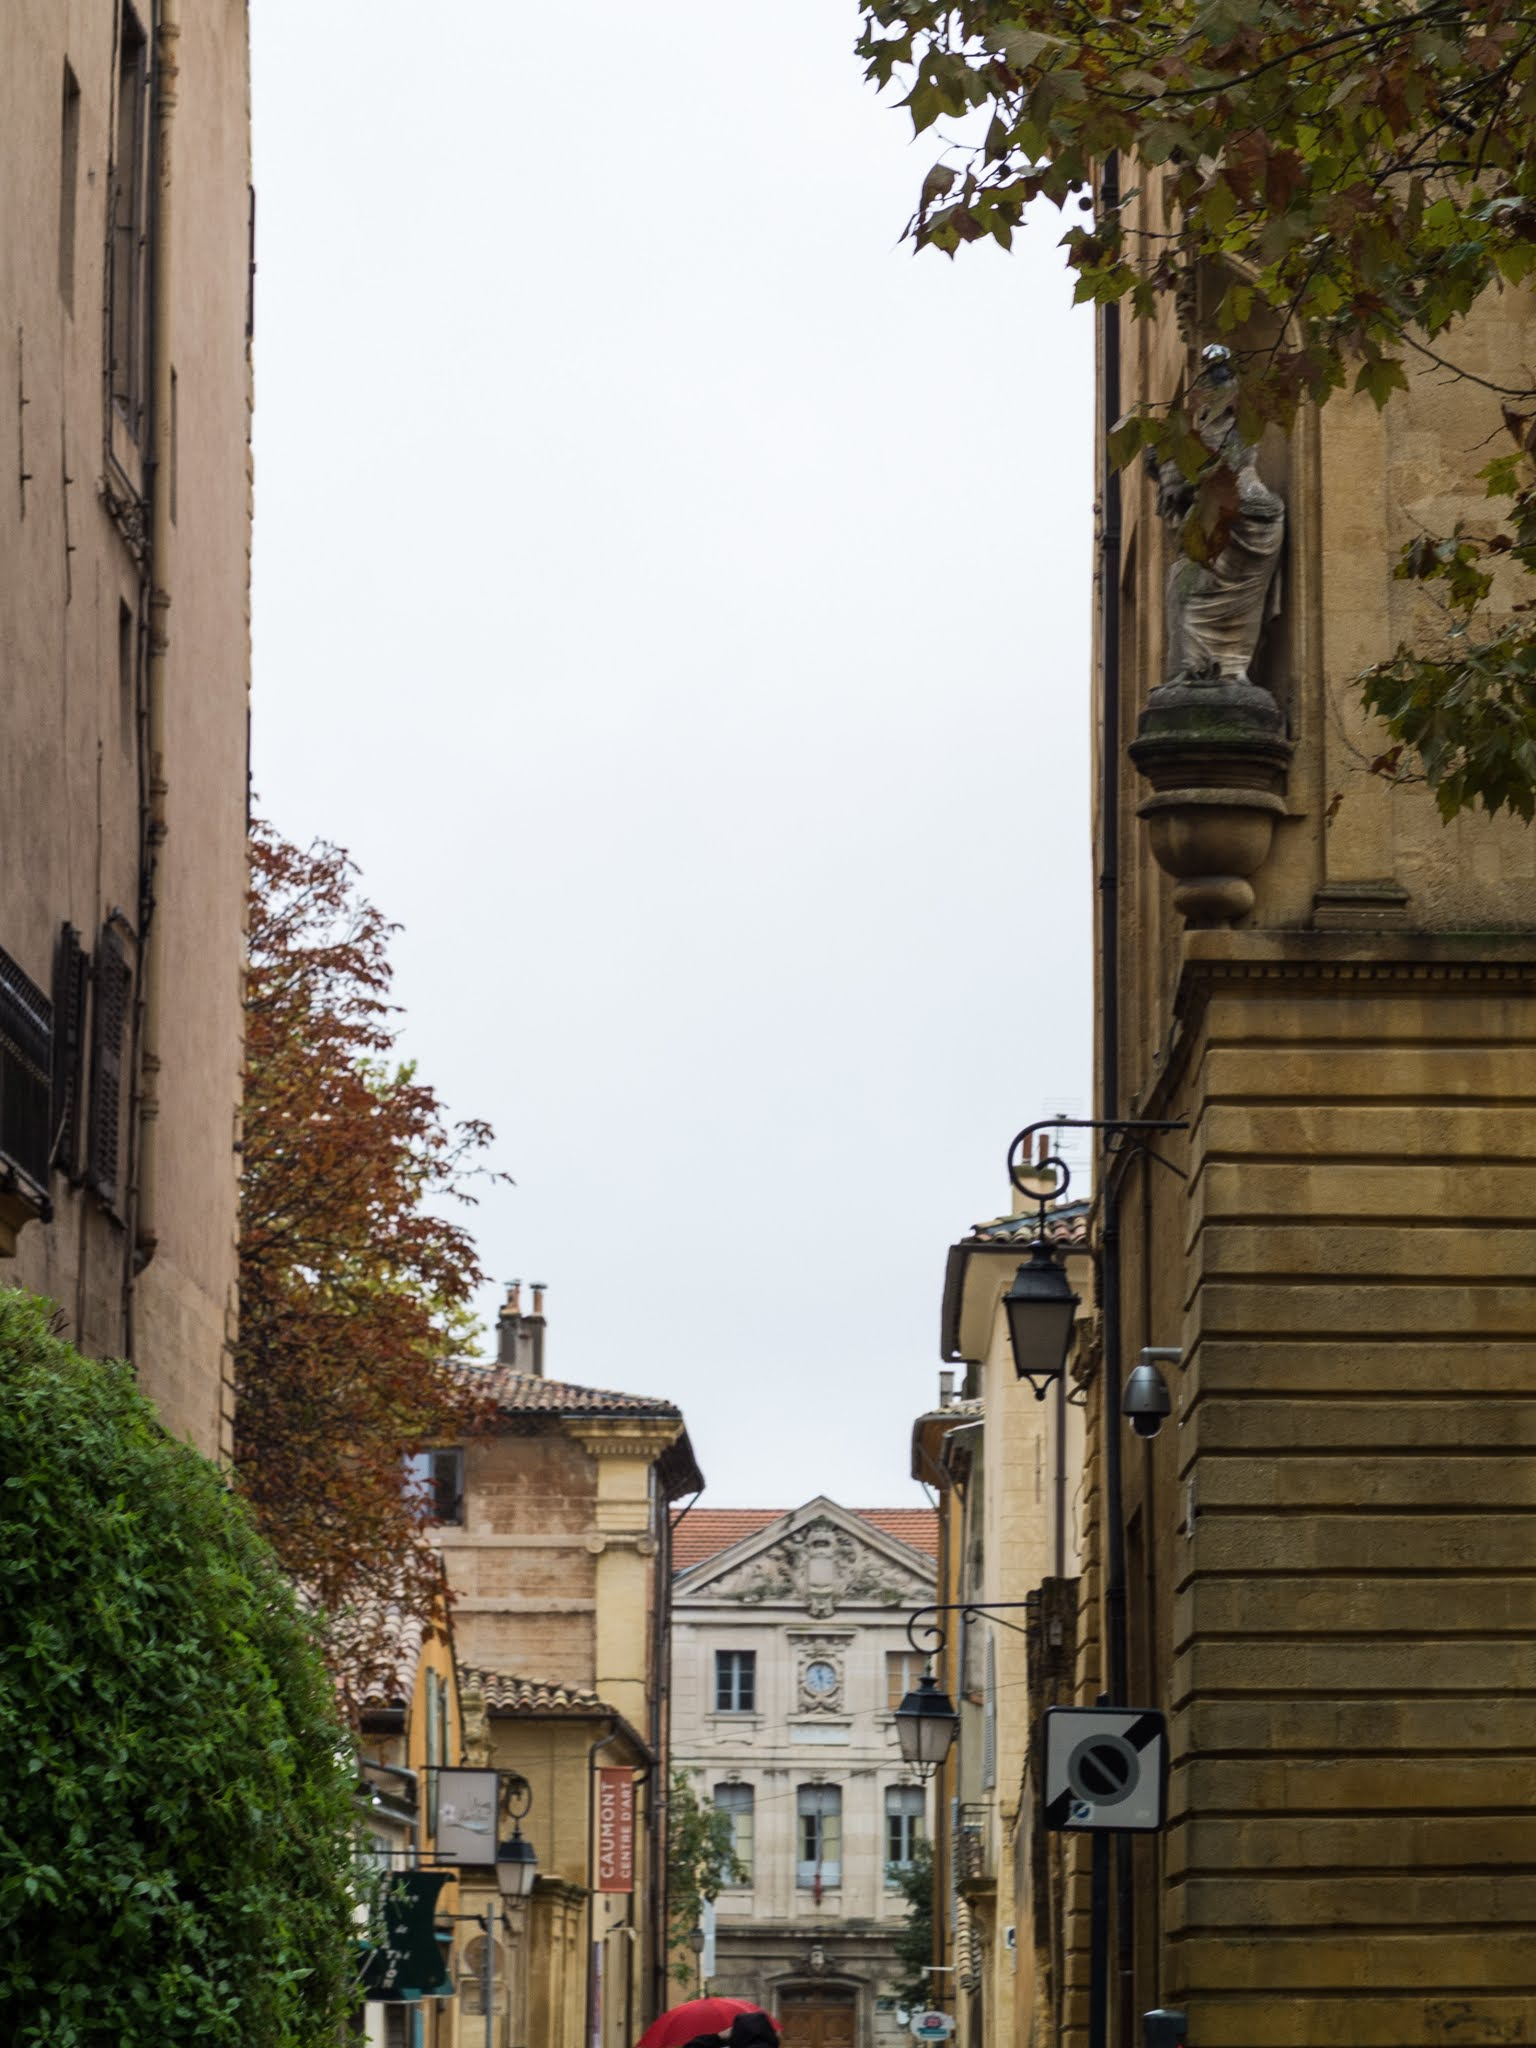 Street view of Aix-en-Provence in the South of France,